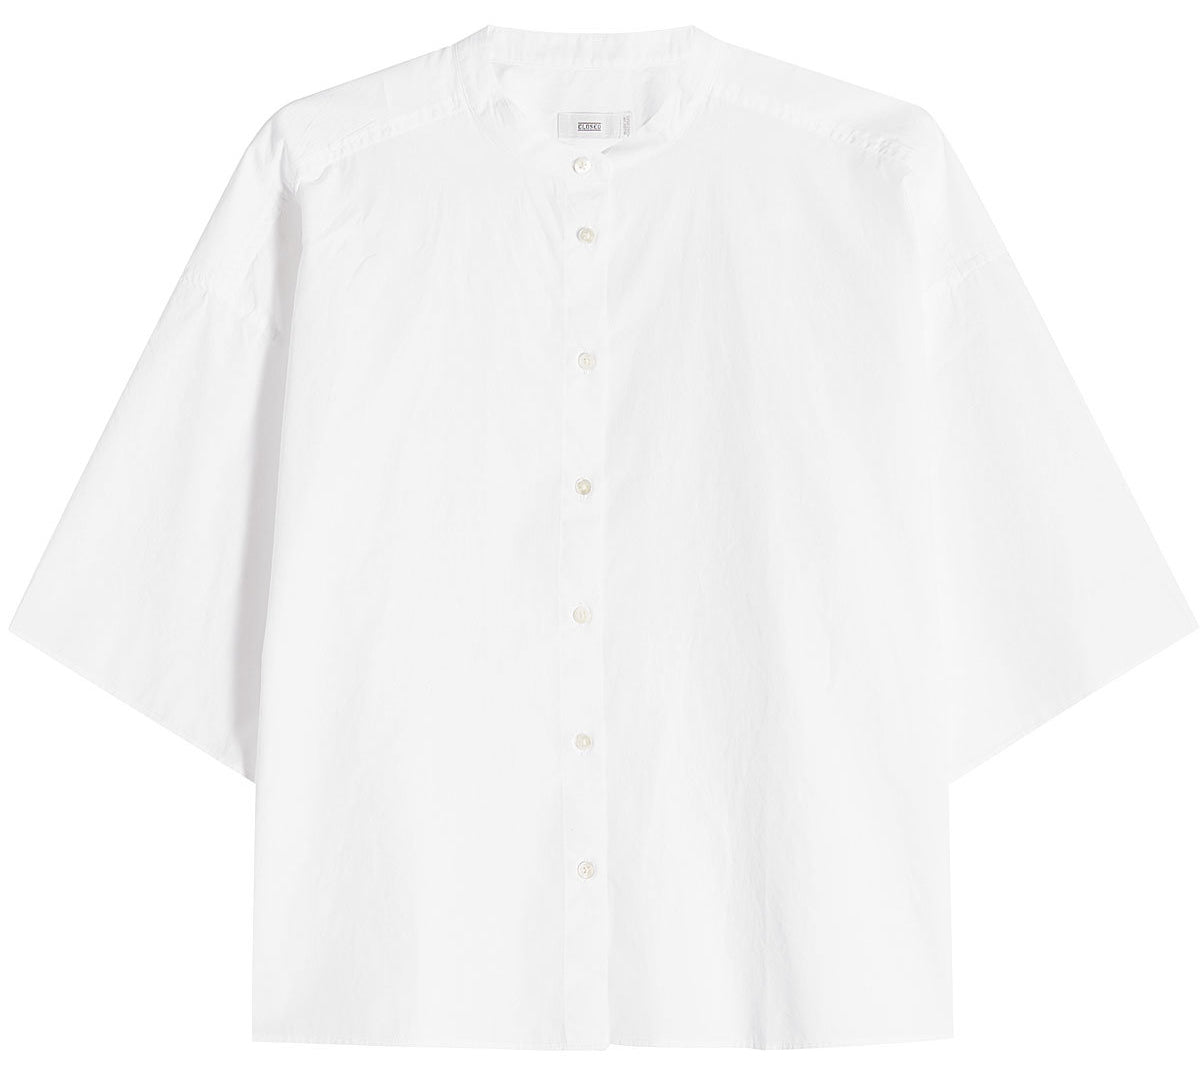 Closed - White cotton shirt